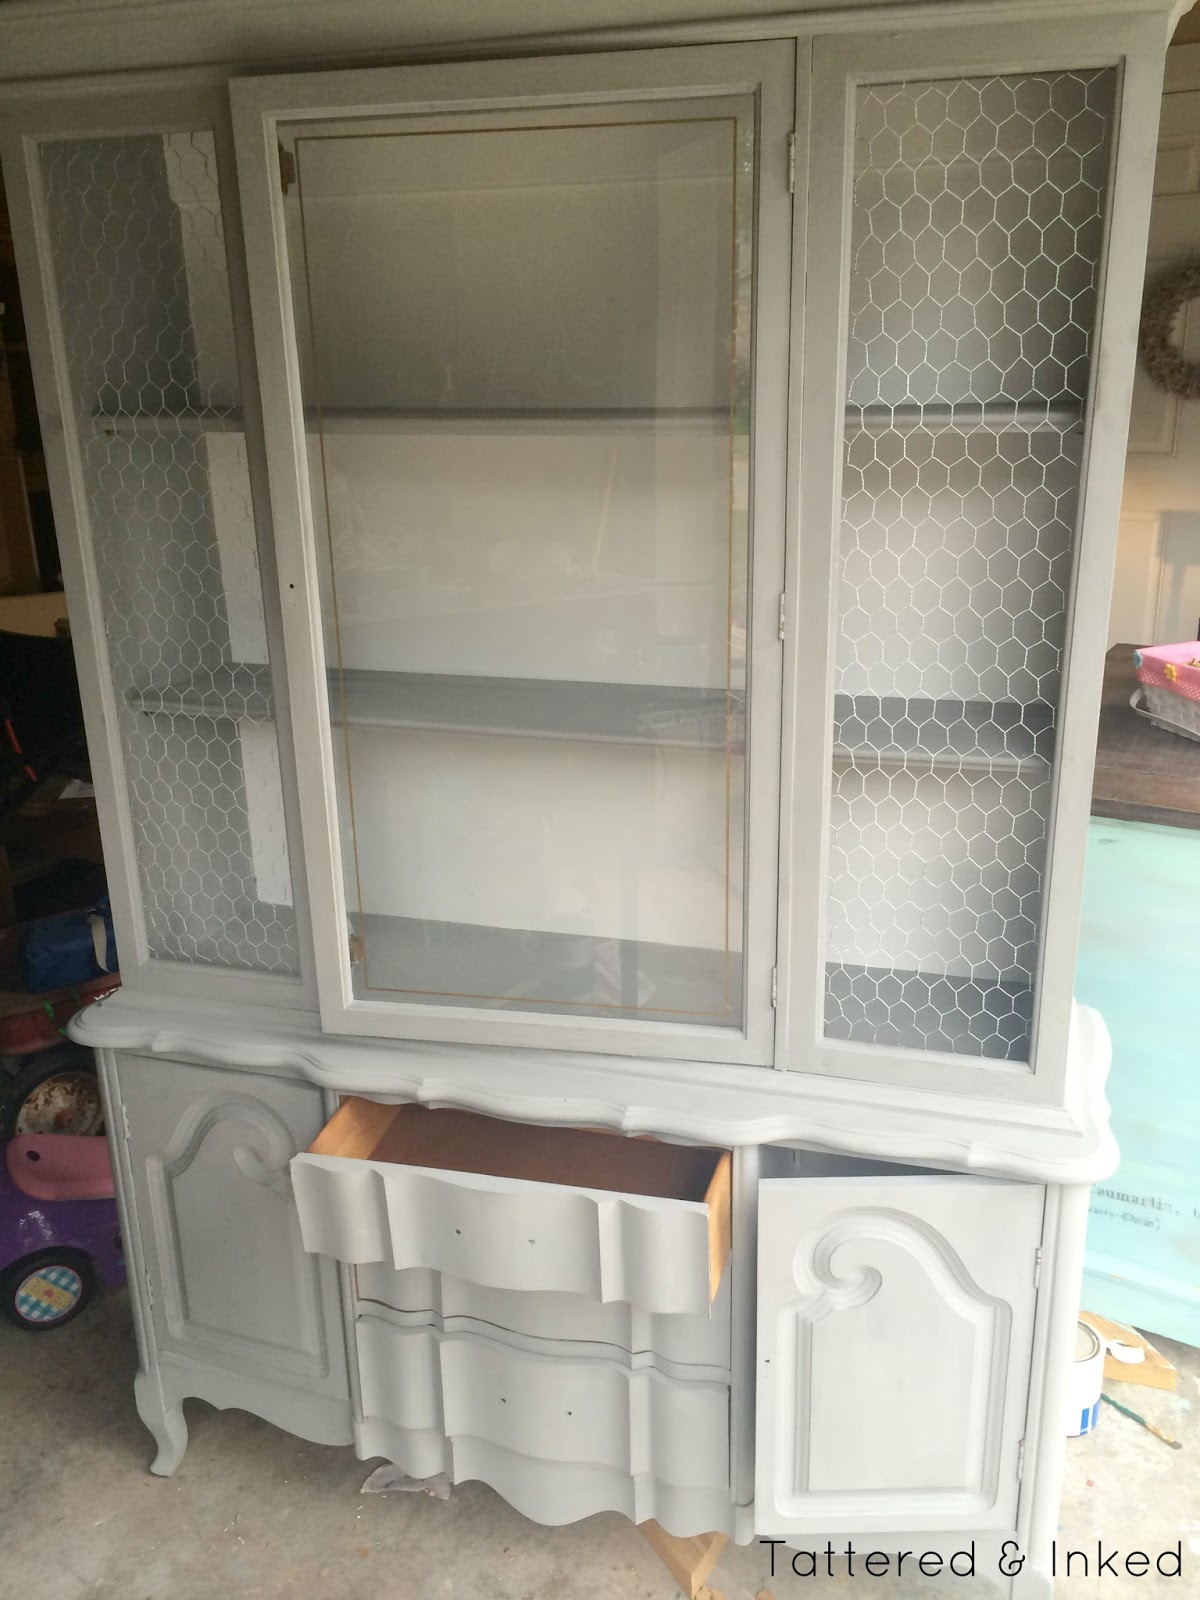 the back wall and inside cabinets got several coats of a pure white